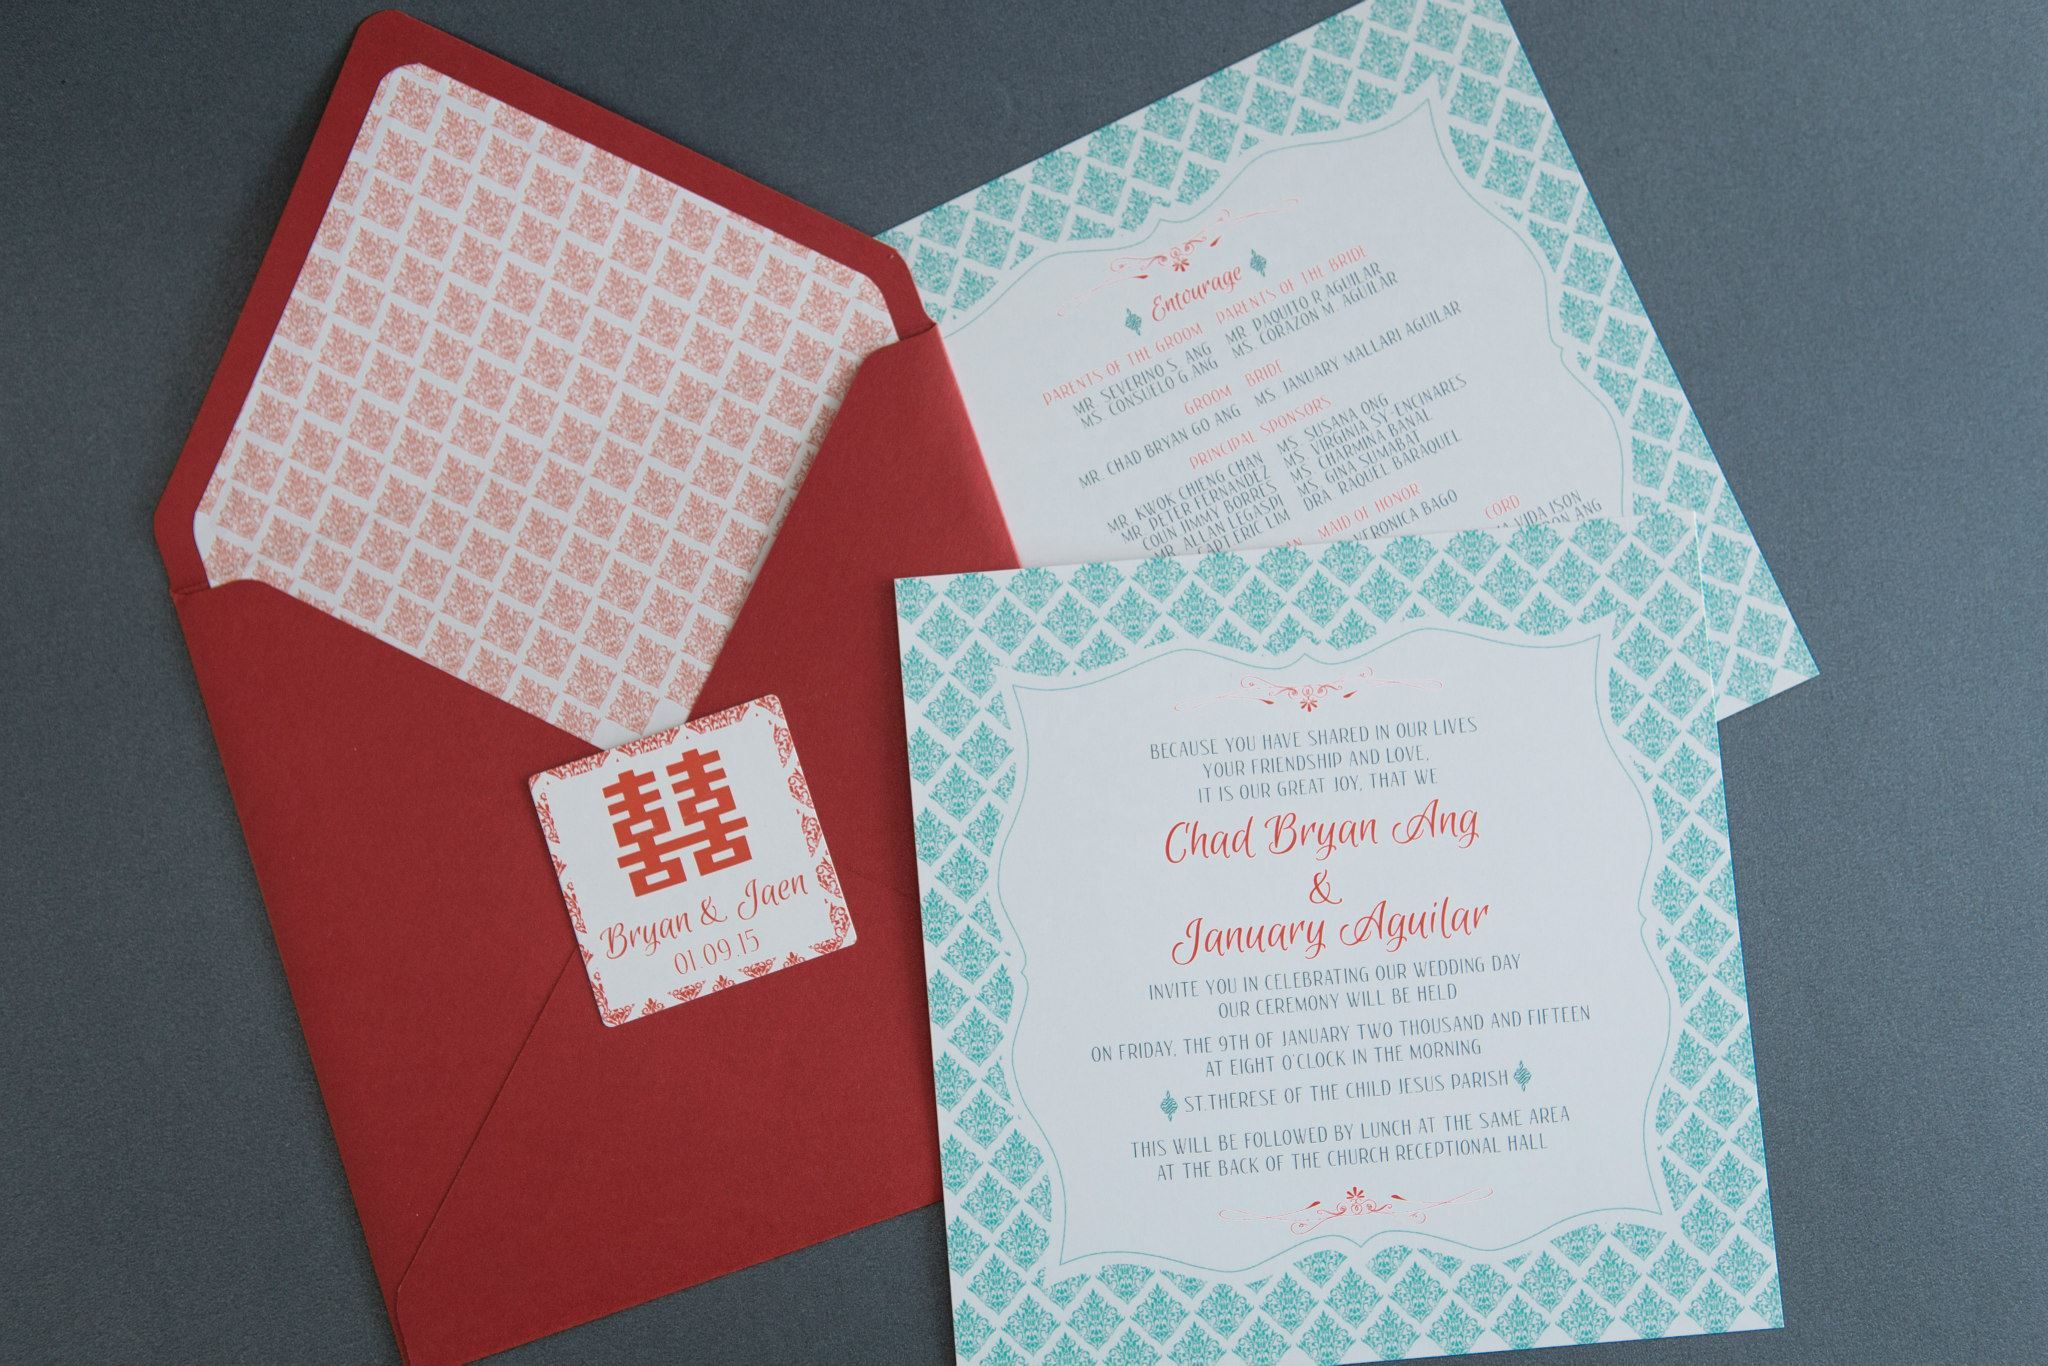 Outstanding Chinese Wedding Invites Image - Invitations Example ...